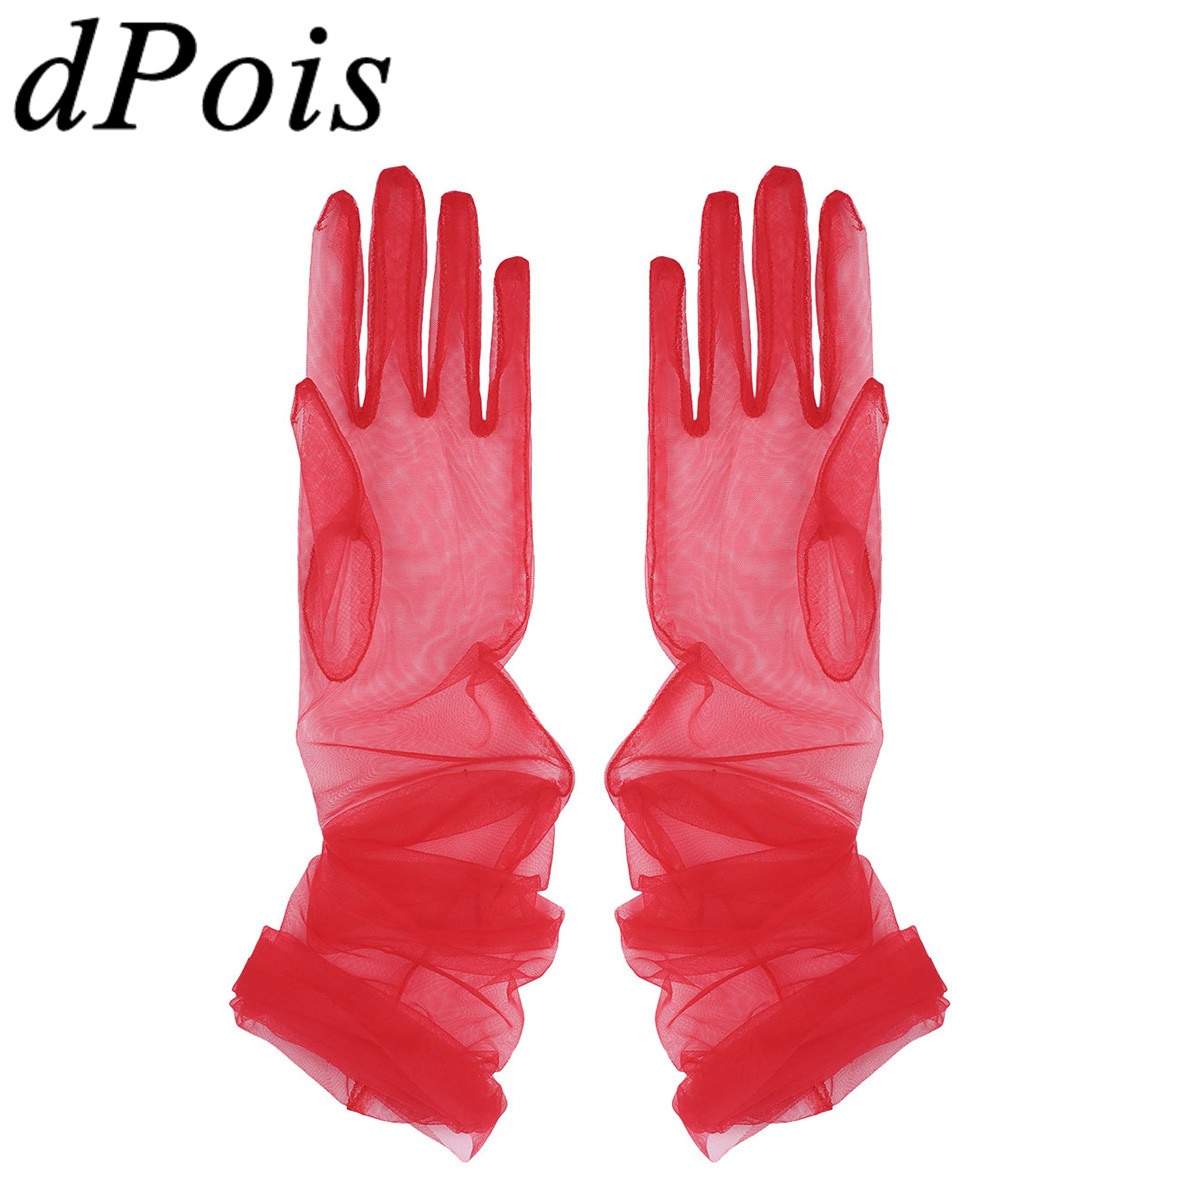 Adult Women Transparent See Through Sheer Tulle Full Finger Long Gloves Mittens Holiday Fancy Photography Costume Accessories